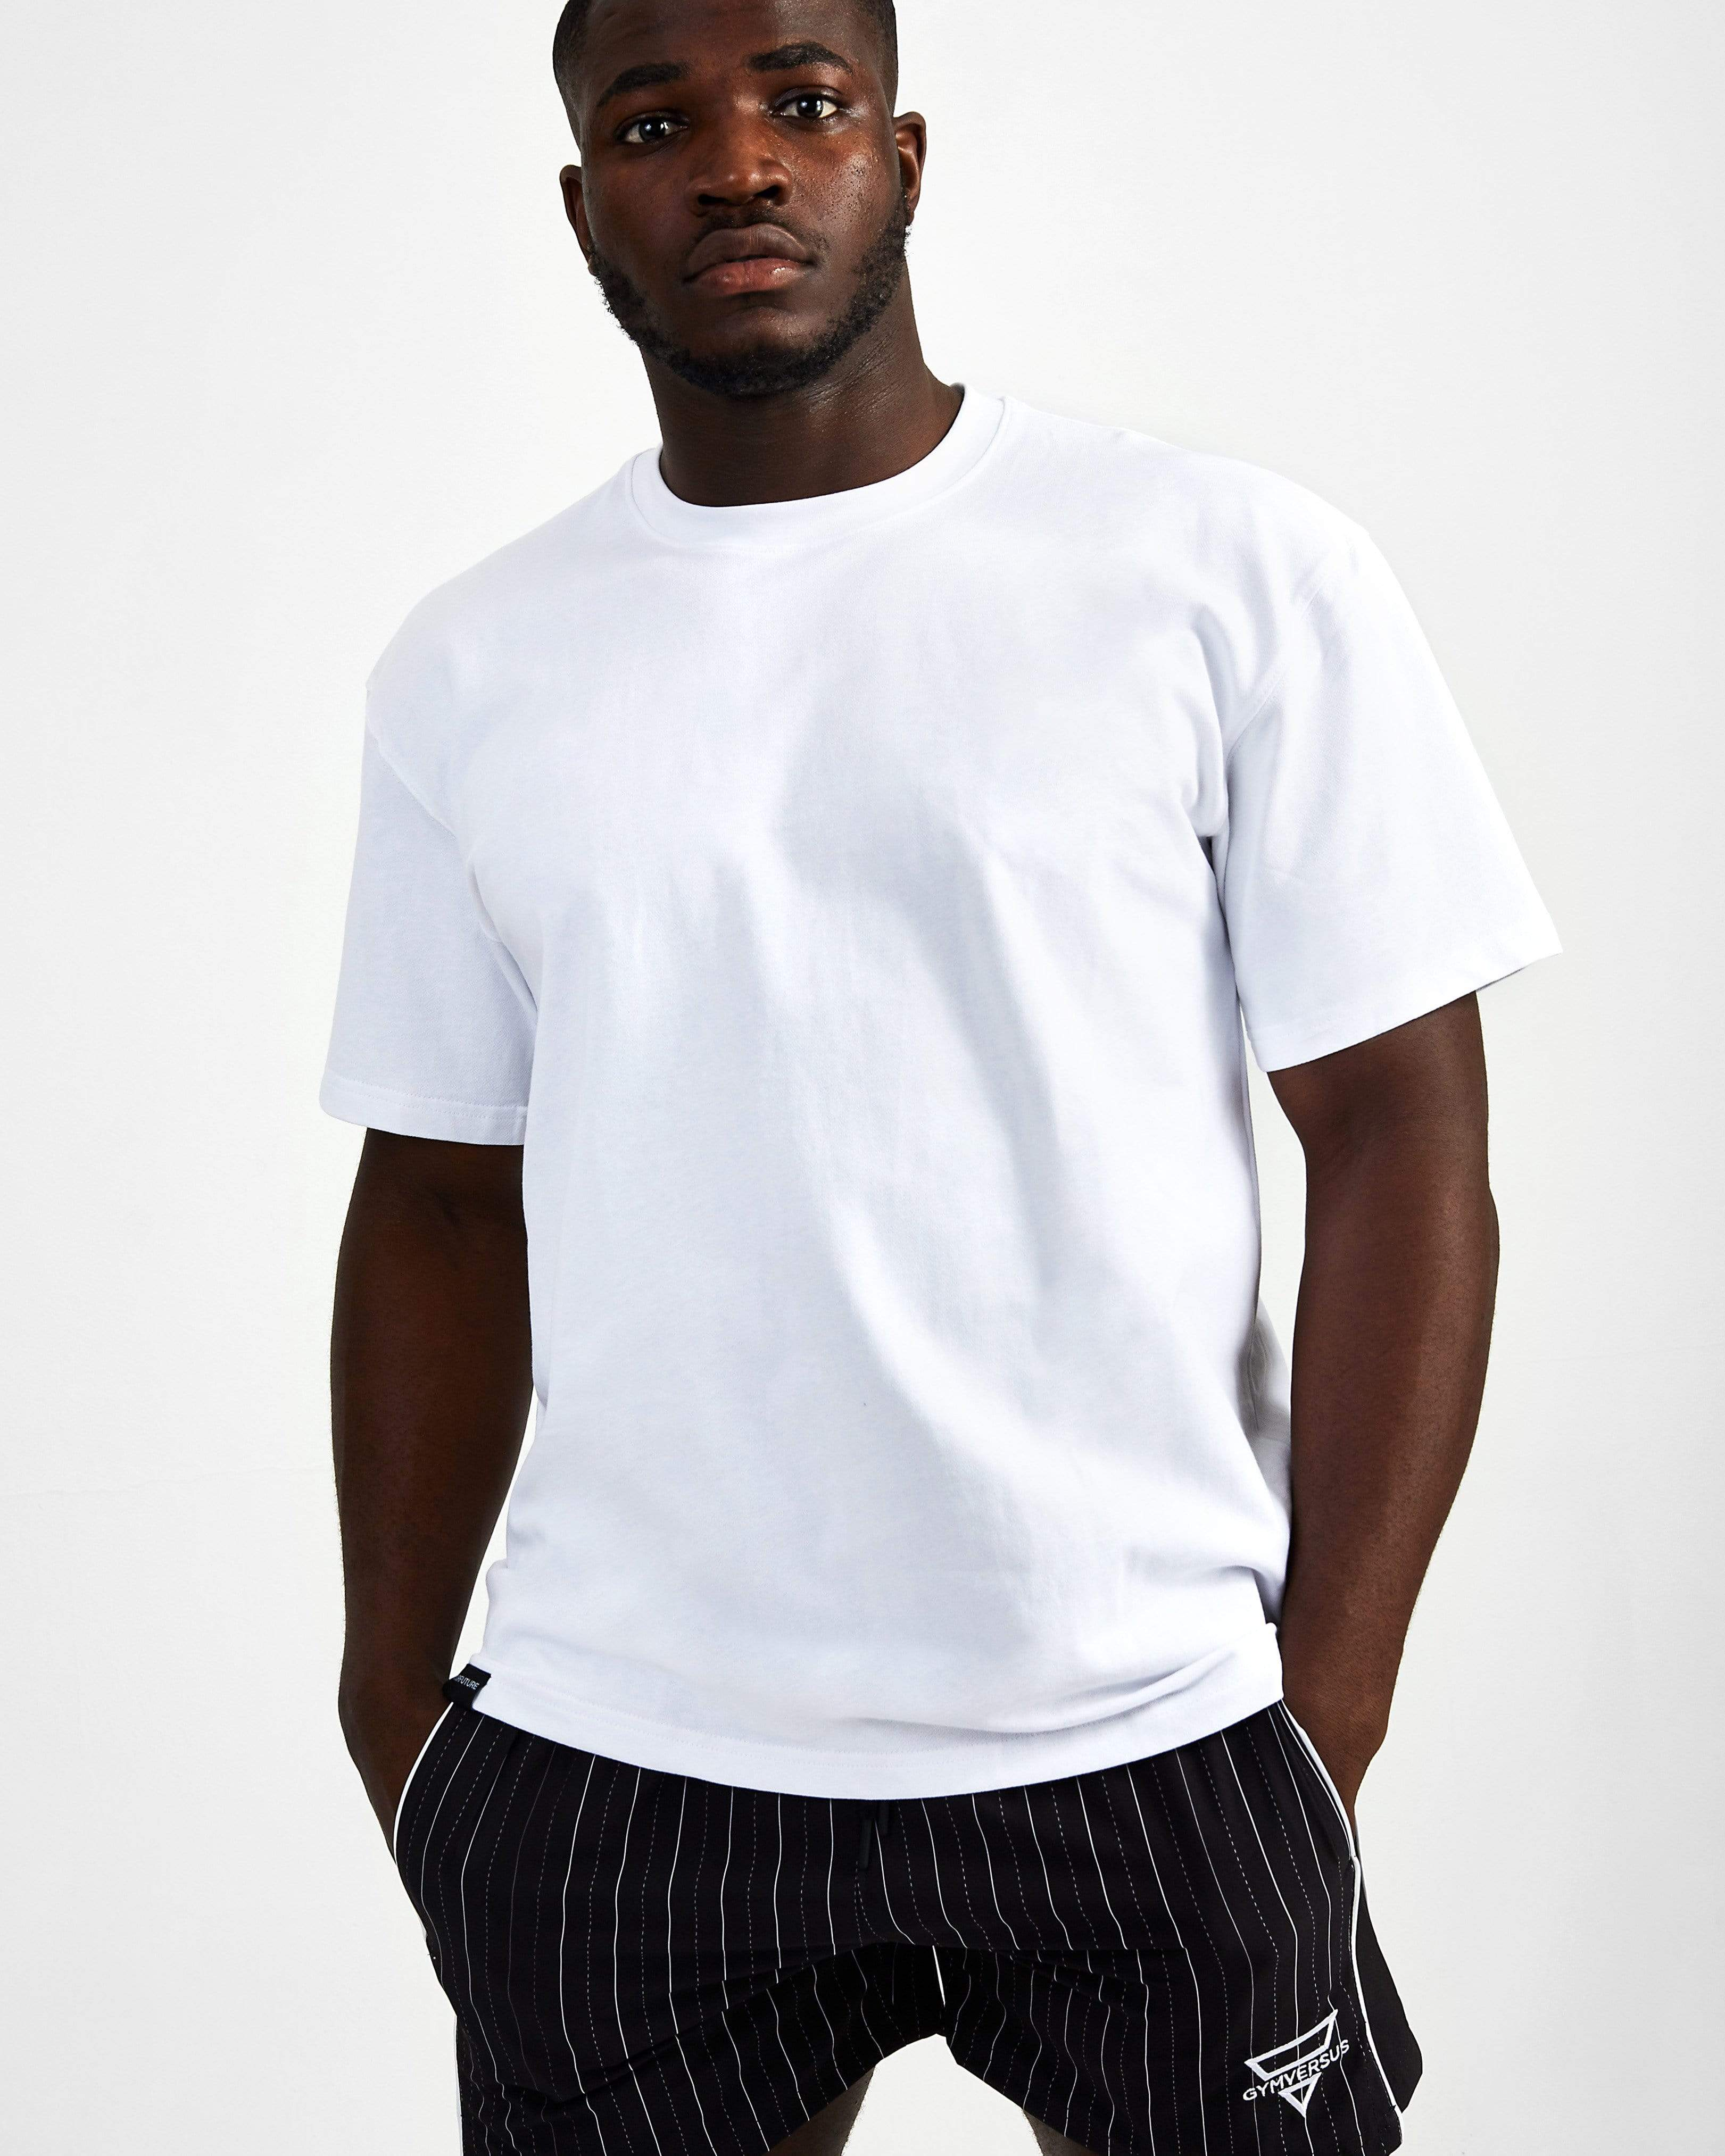 Blank Superset Oversized Cotton Tee - White - GYMVERSUS